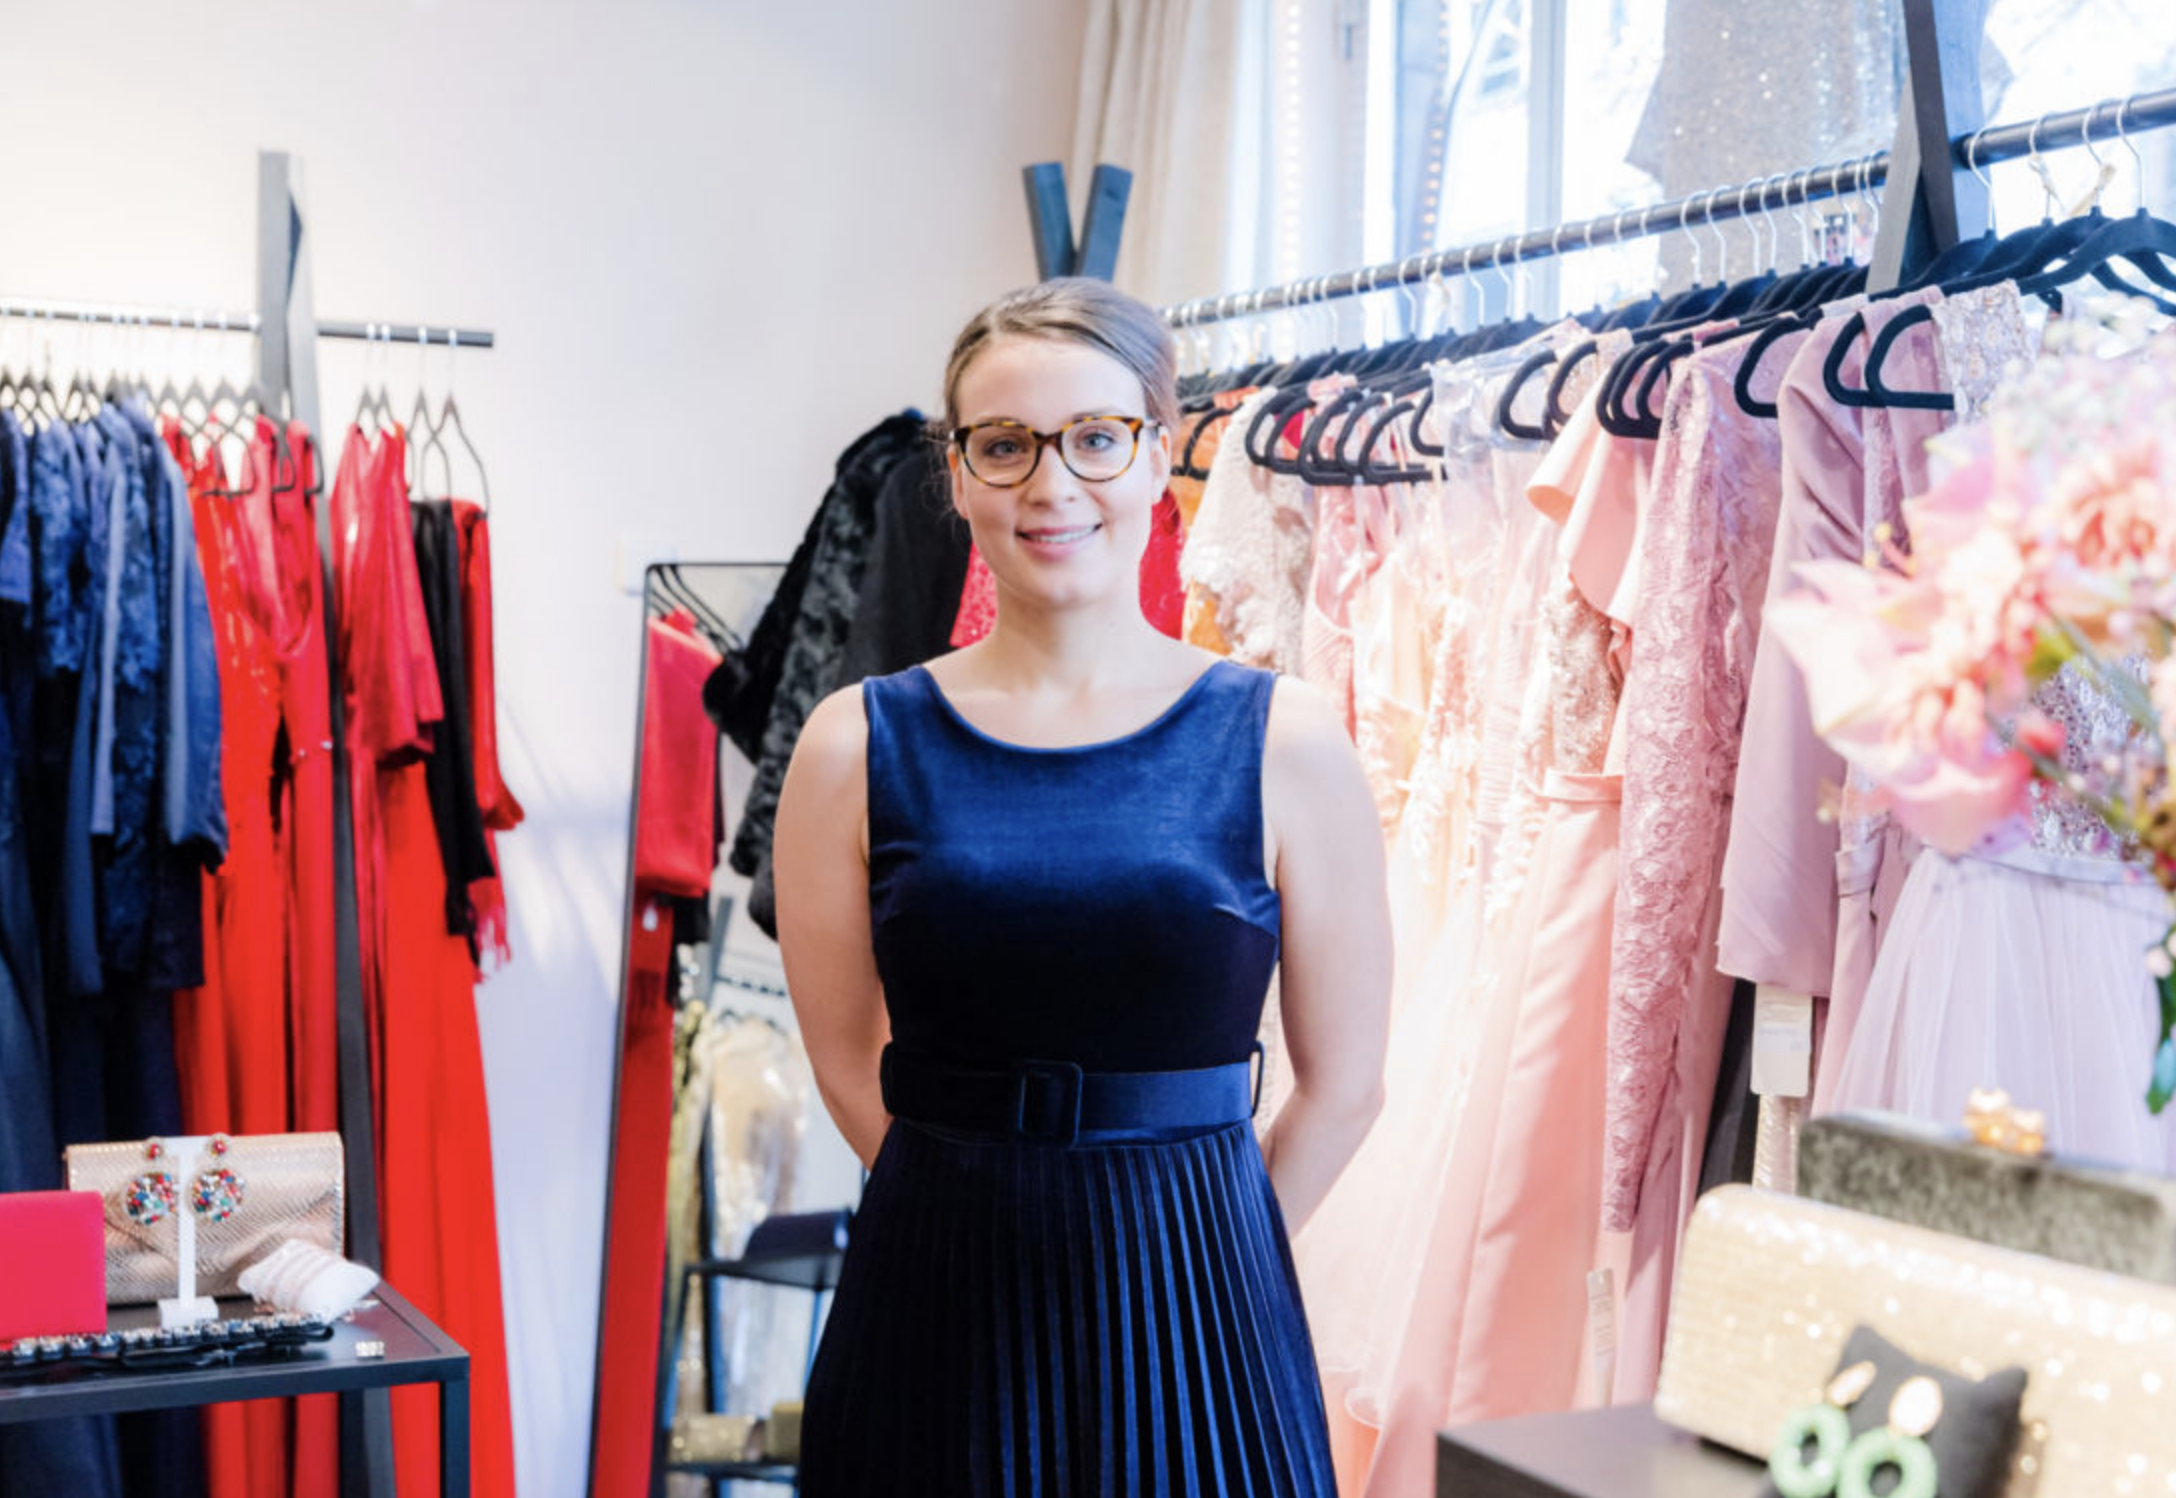 Velvet Dream Dresses is een initiatief van Fleur van Hooren